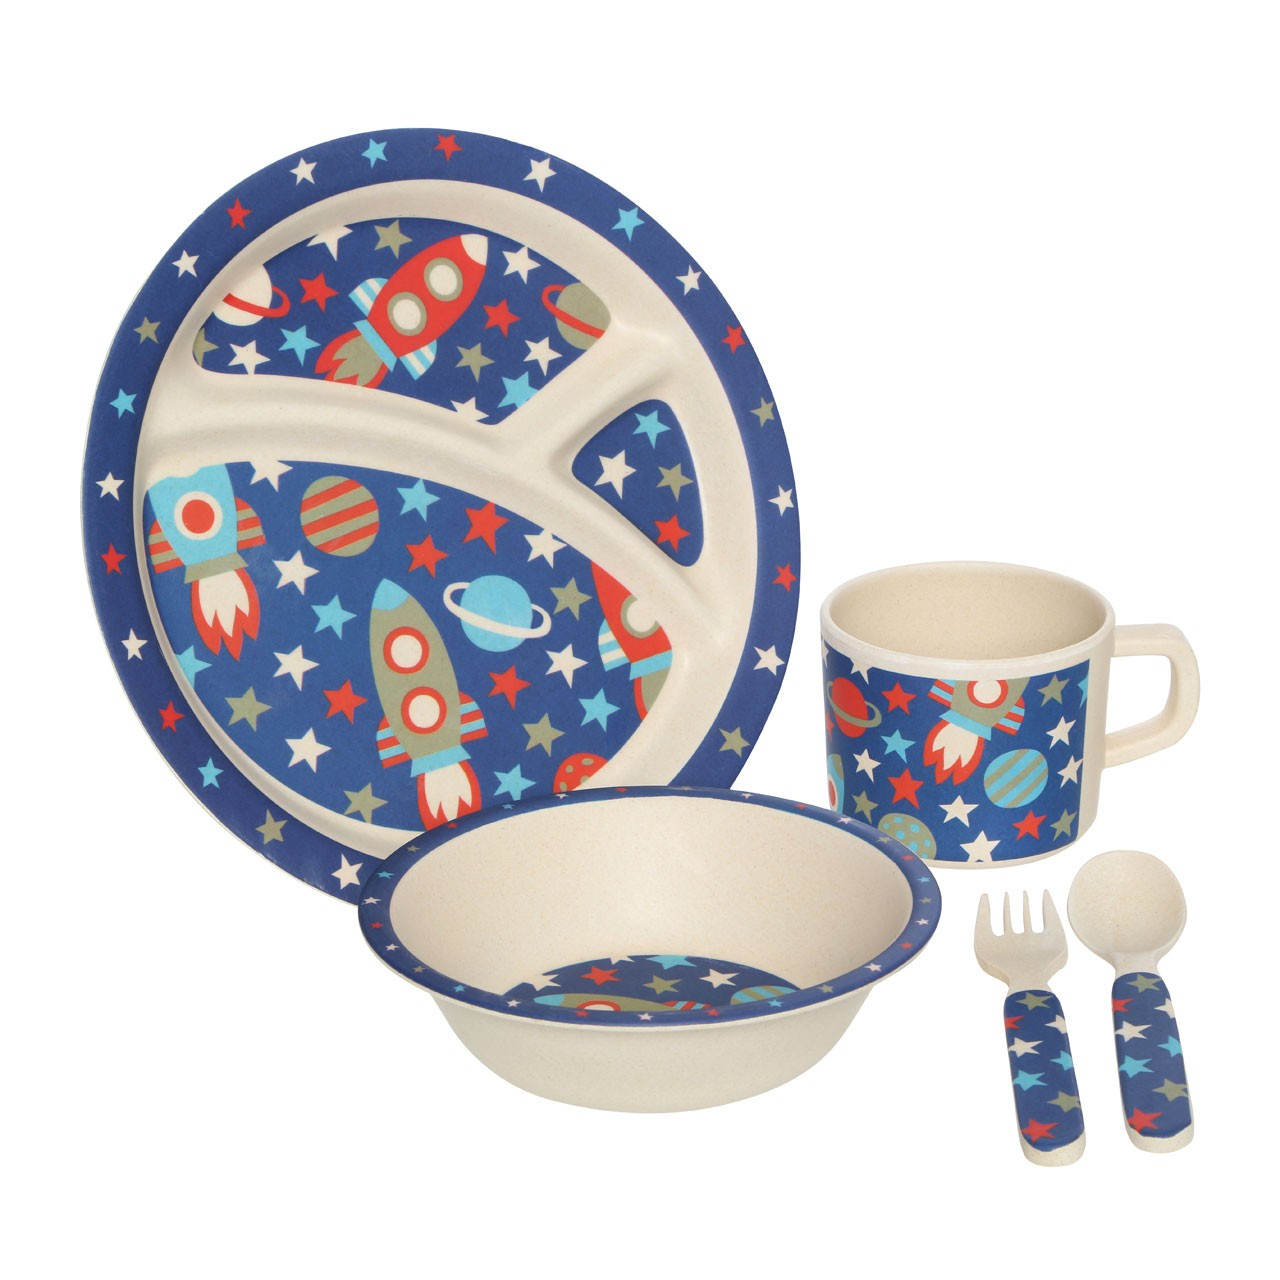 Prime Furnishing Eden 5pc Kids' Space Dinner Set